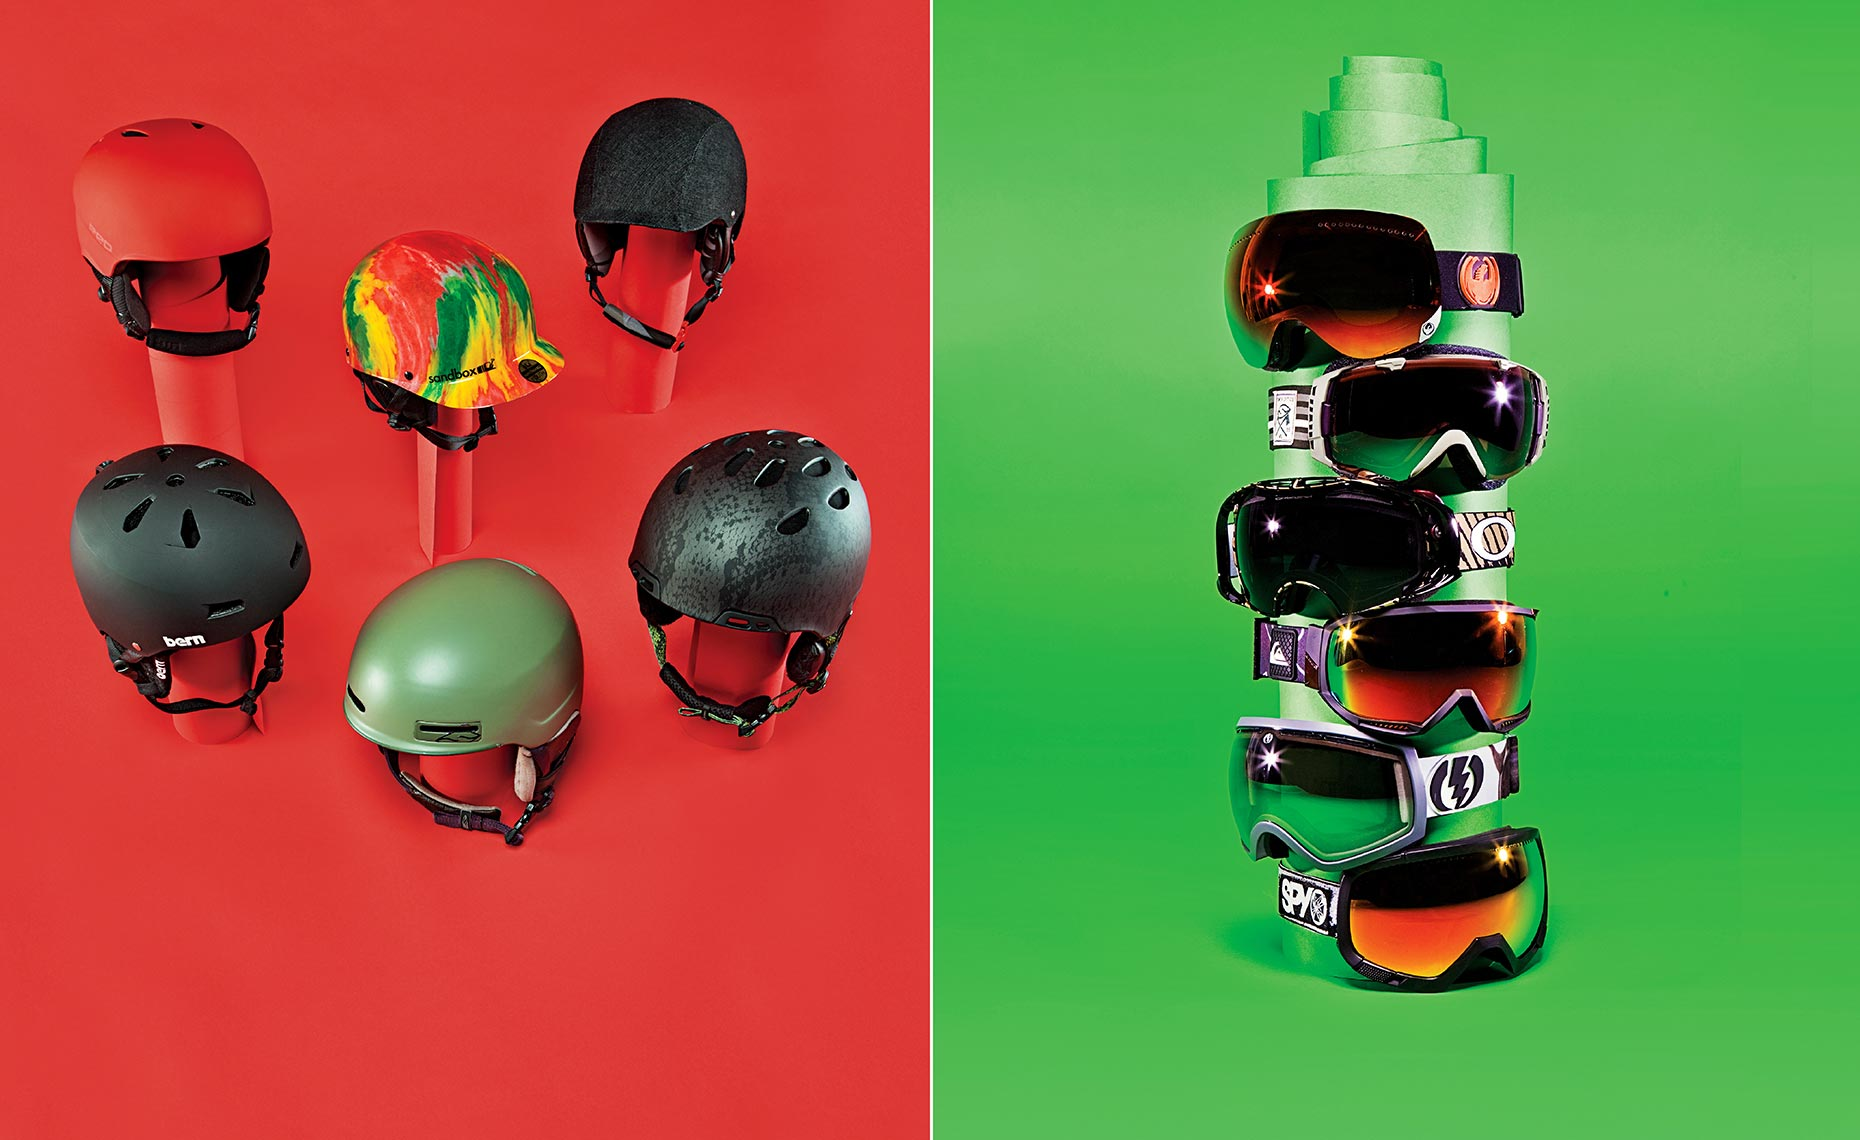 13_Snowboarding_Helmet_Goggles_Product_Chris_Wellhausen_Photography-DUP.JPG